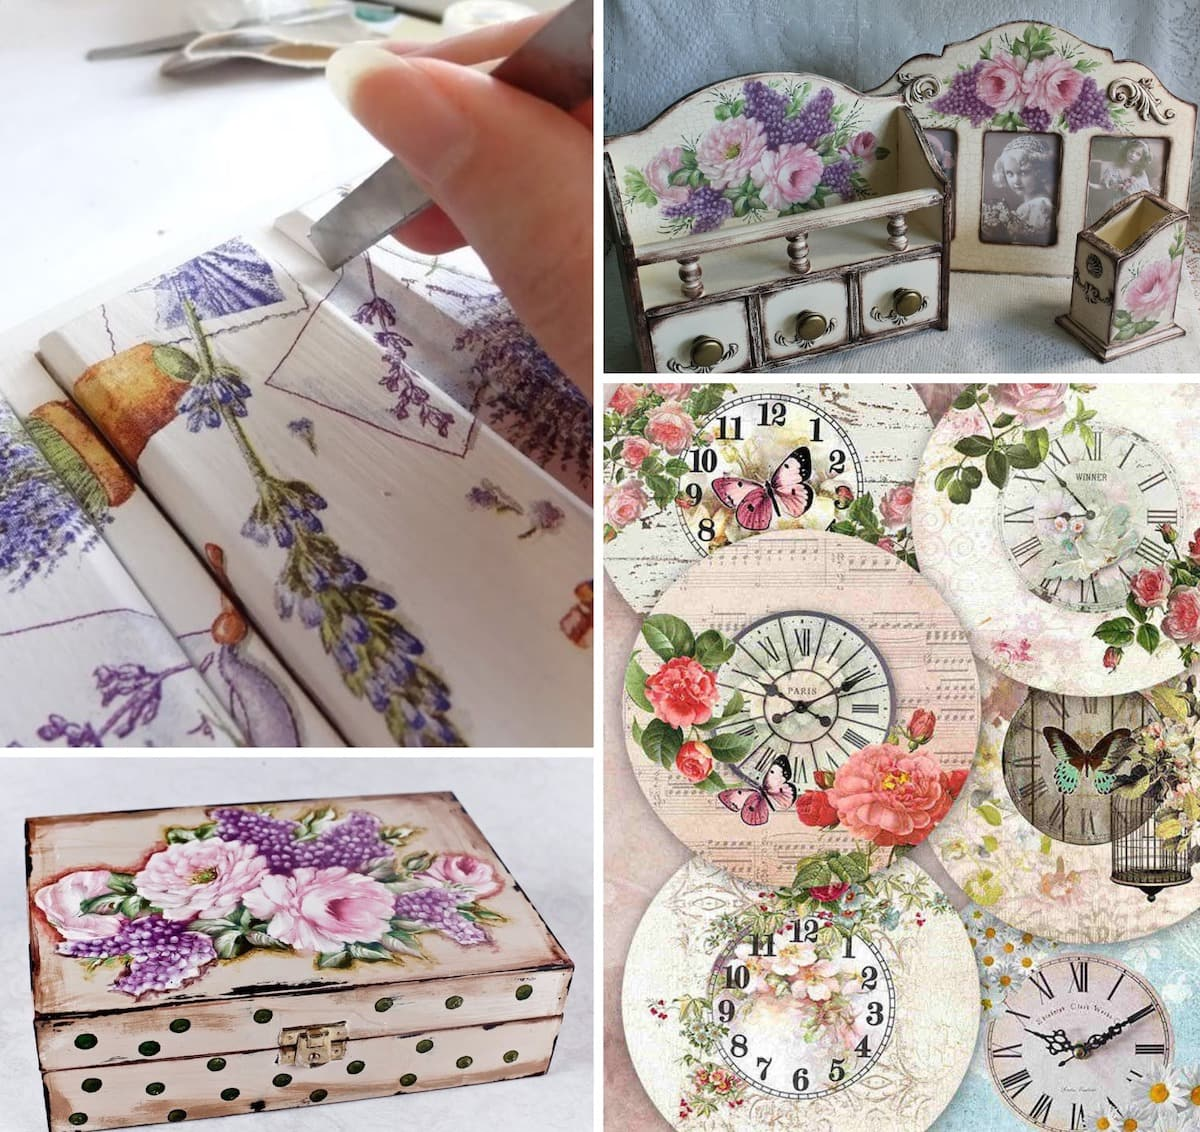 Decorating and decorating your favorite things with your own hands